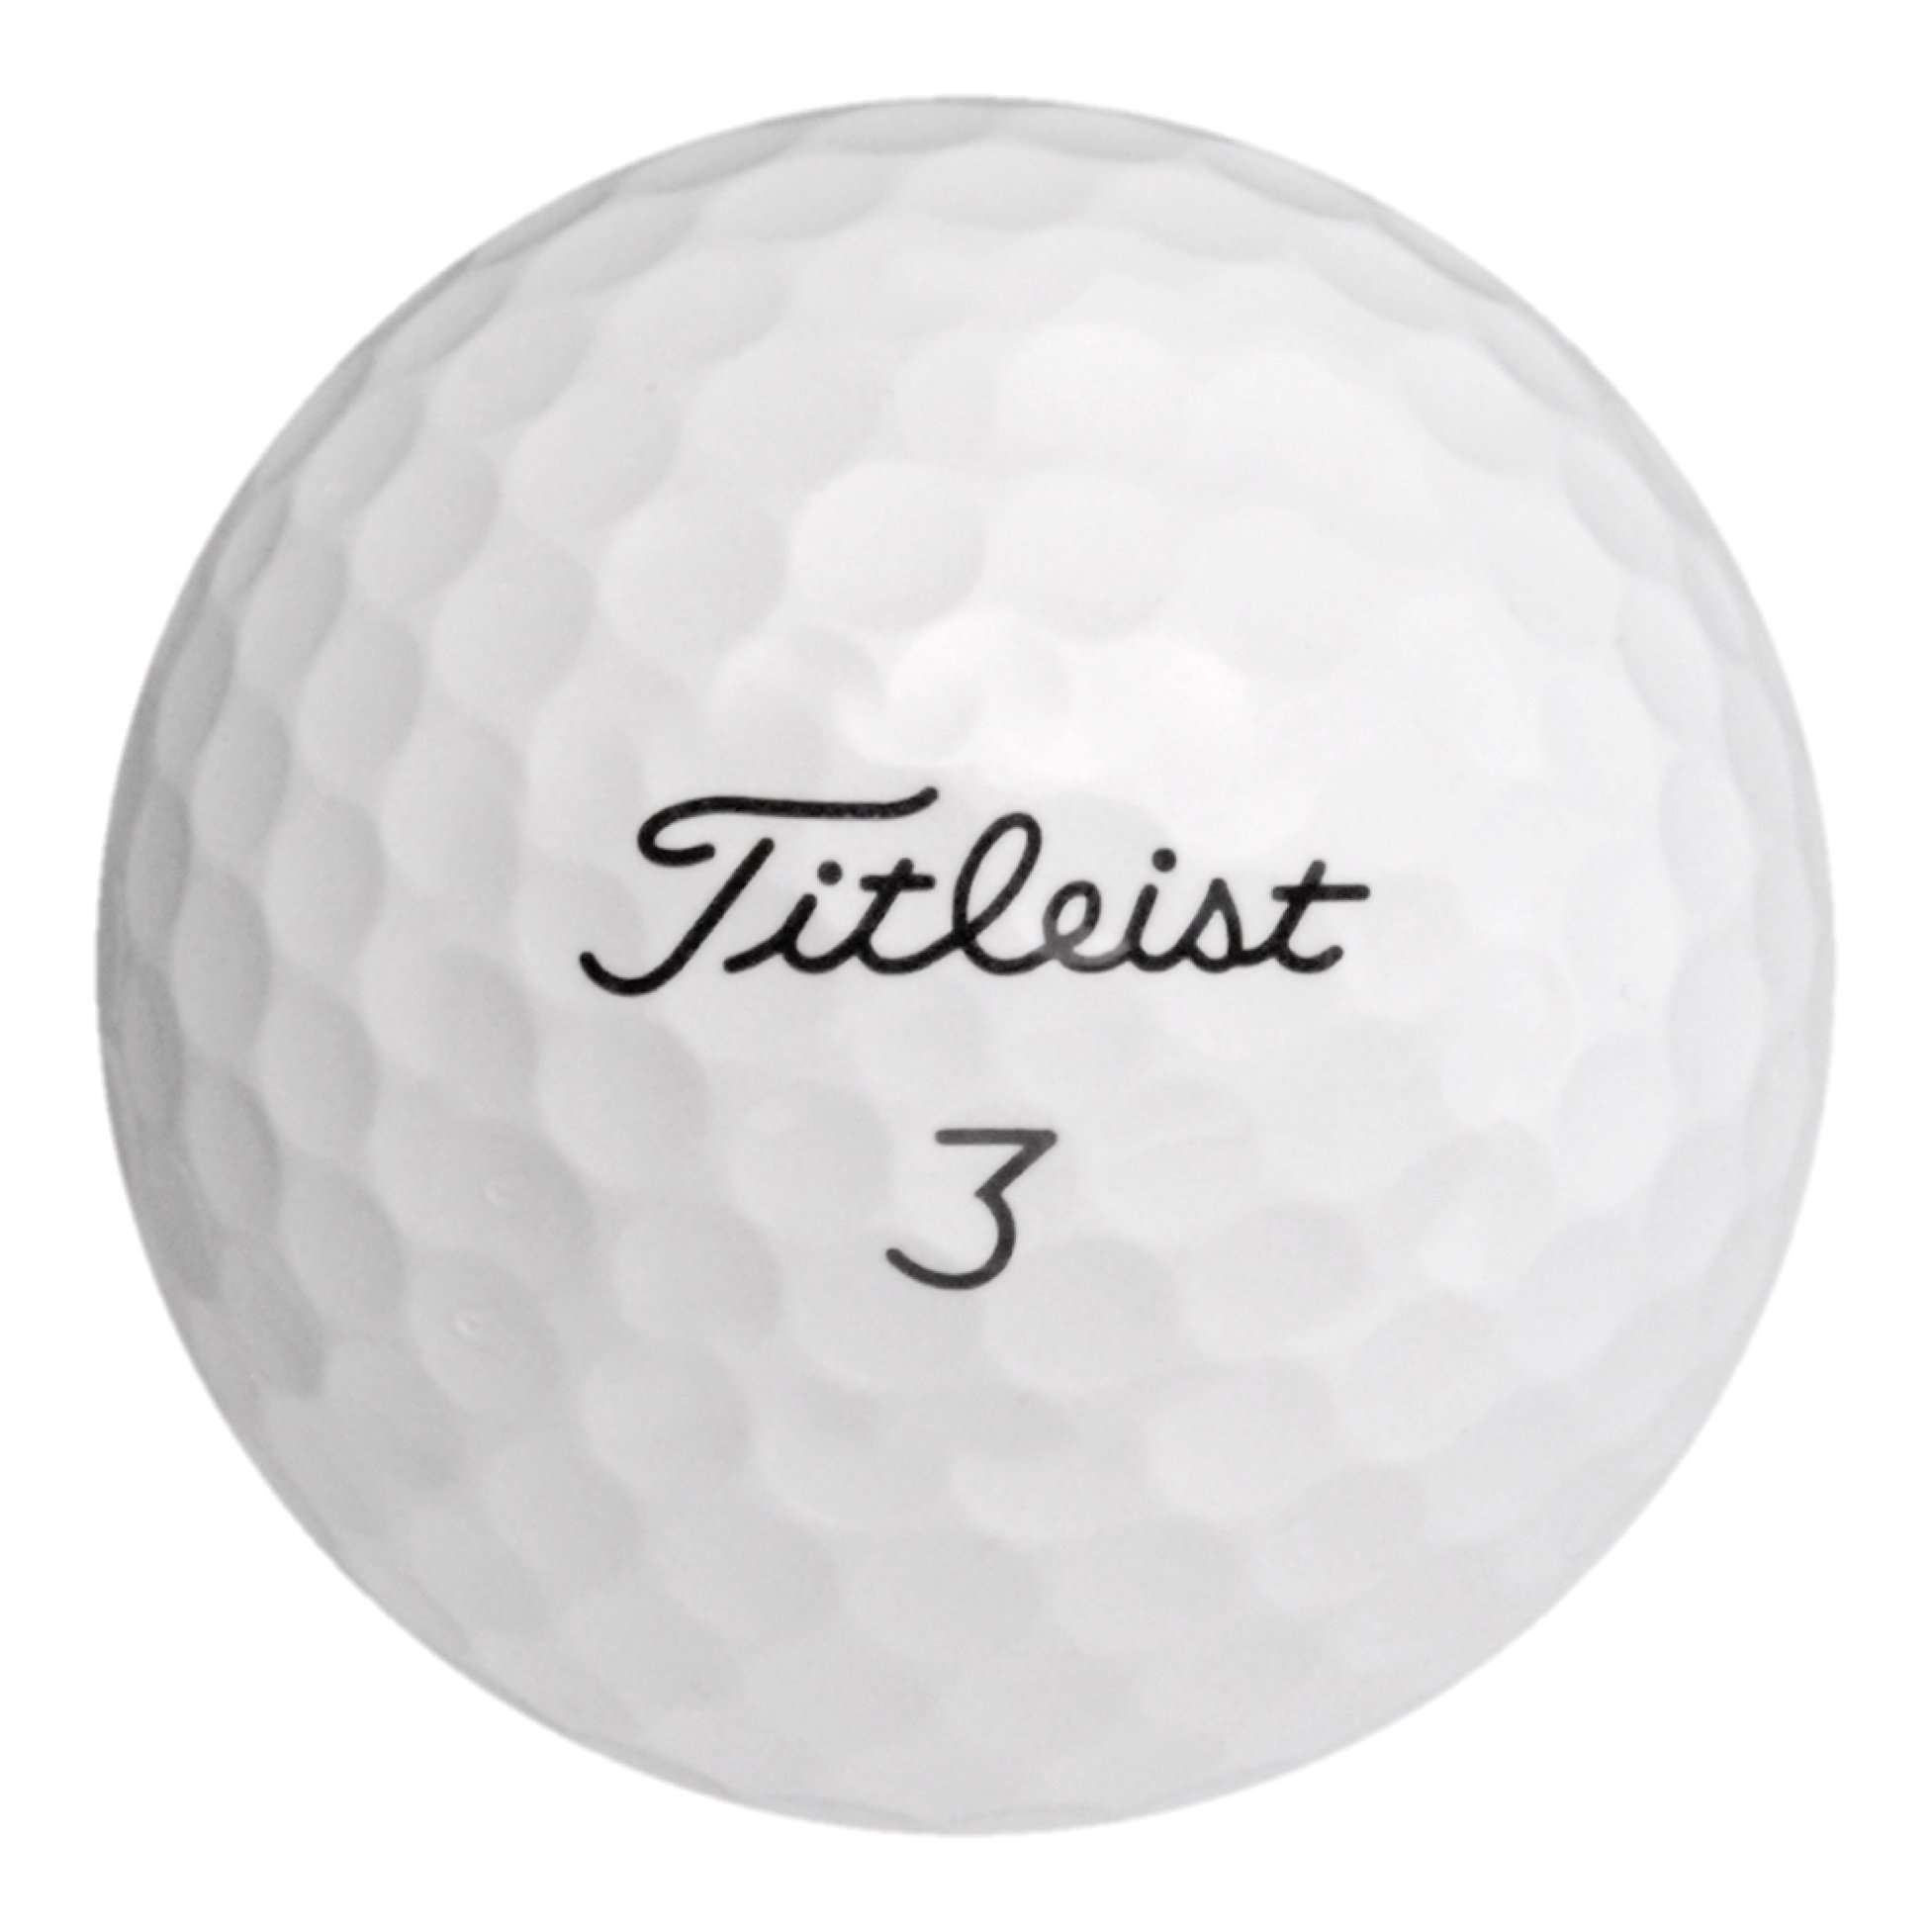 84 Titleist ProV1 2017 - Value (AAA) Grade - Recycled (Used) Golf Balls by Titleist (Image #2)